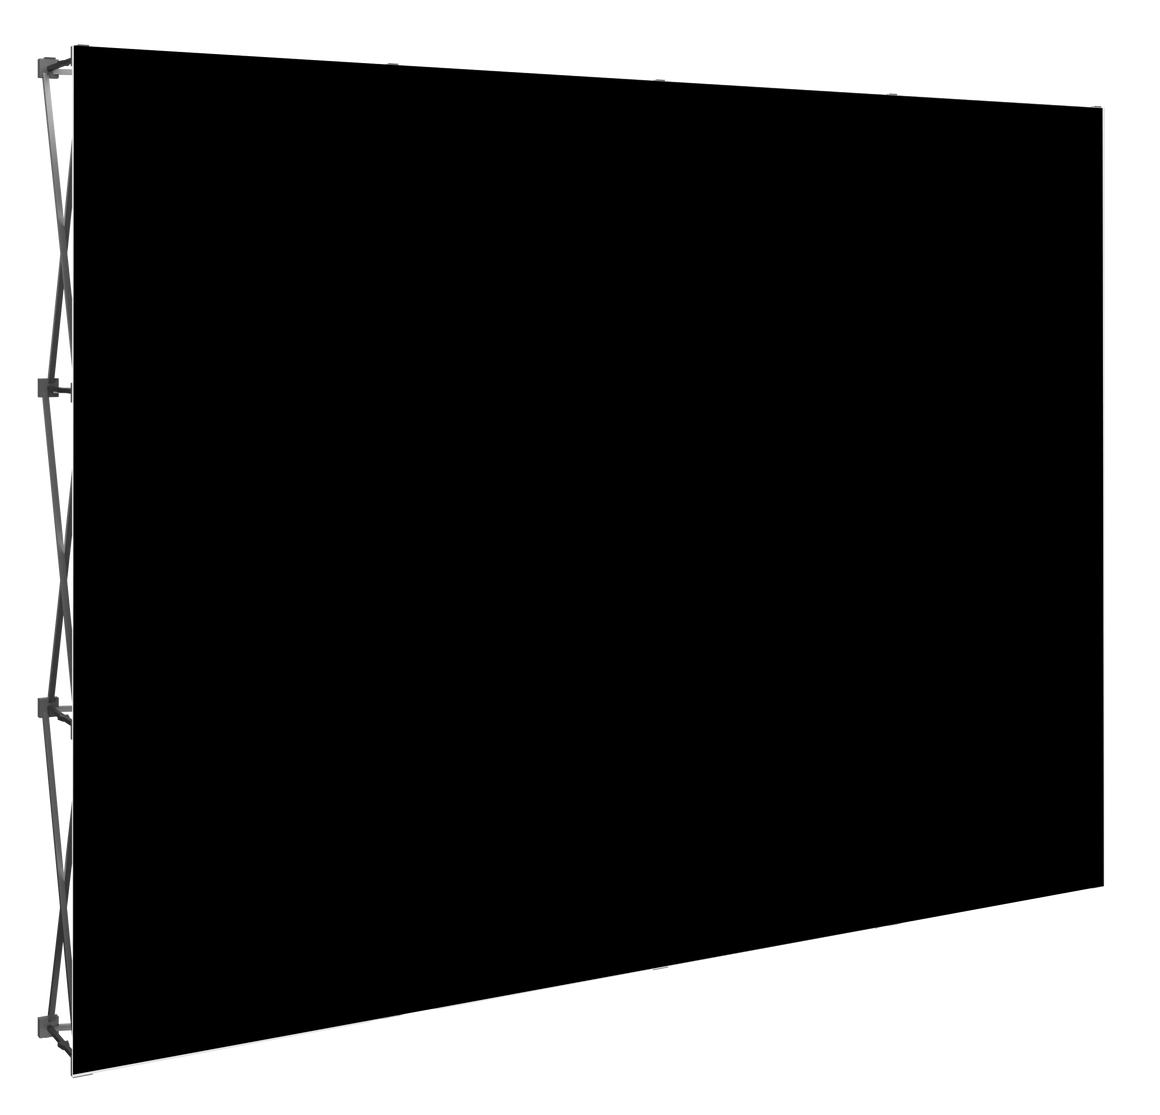 Premium Fabric Backdrop Kit - 8' w x 10' h